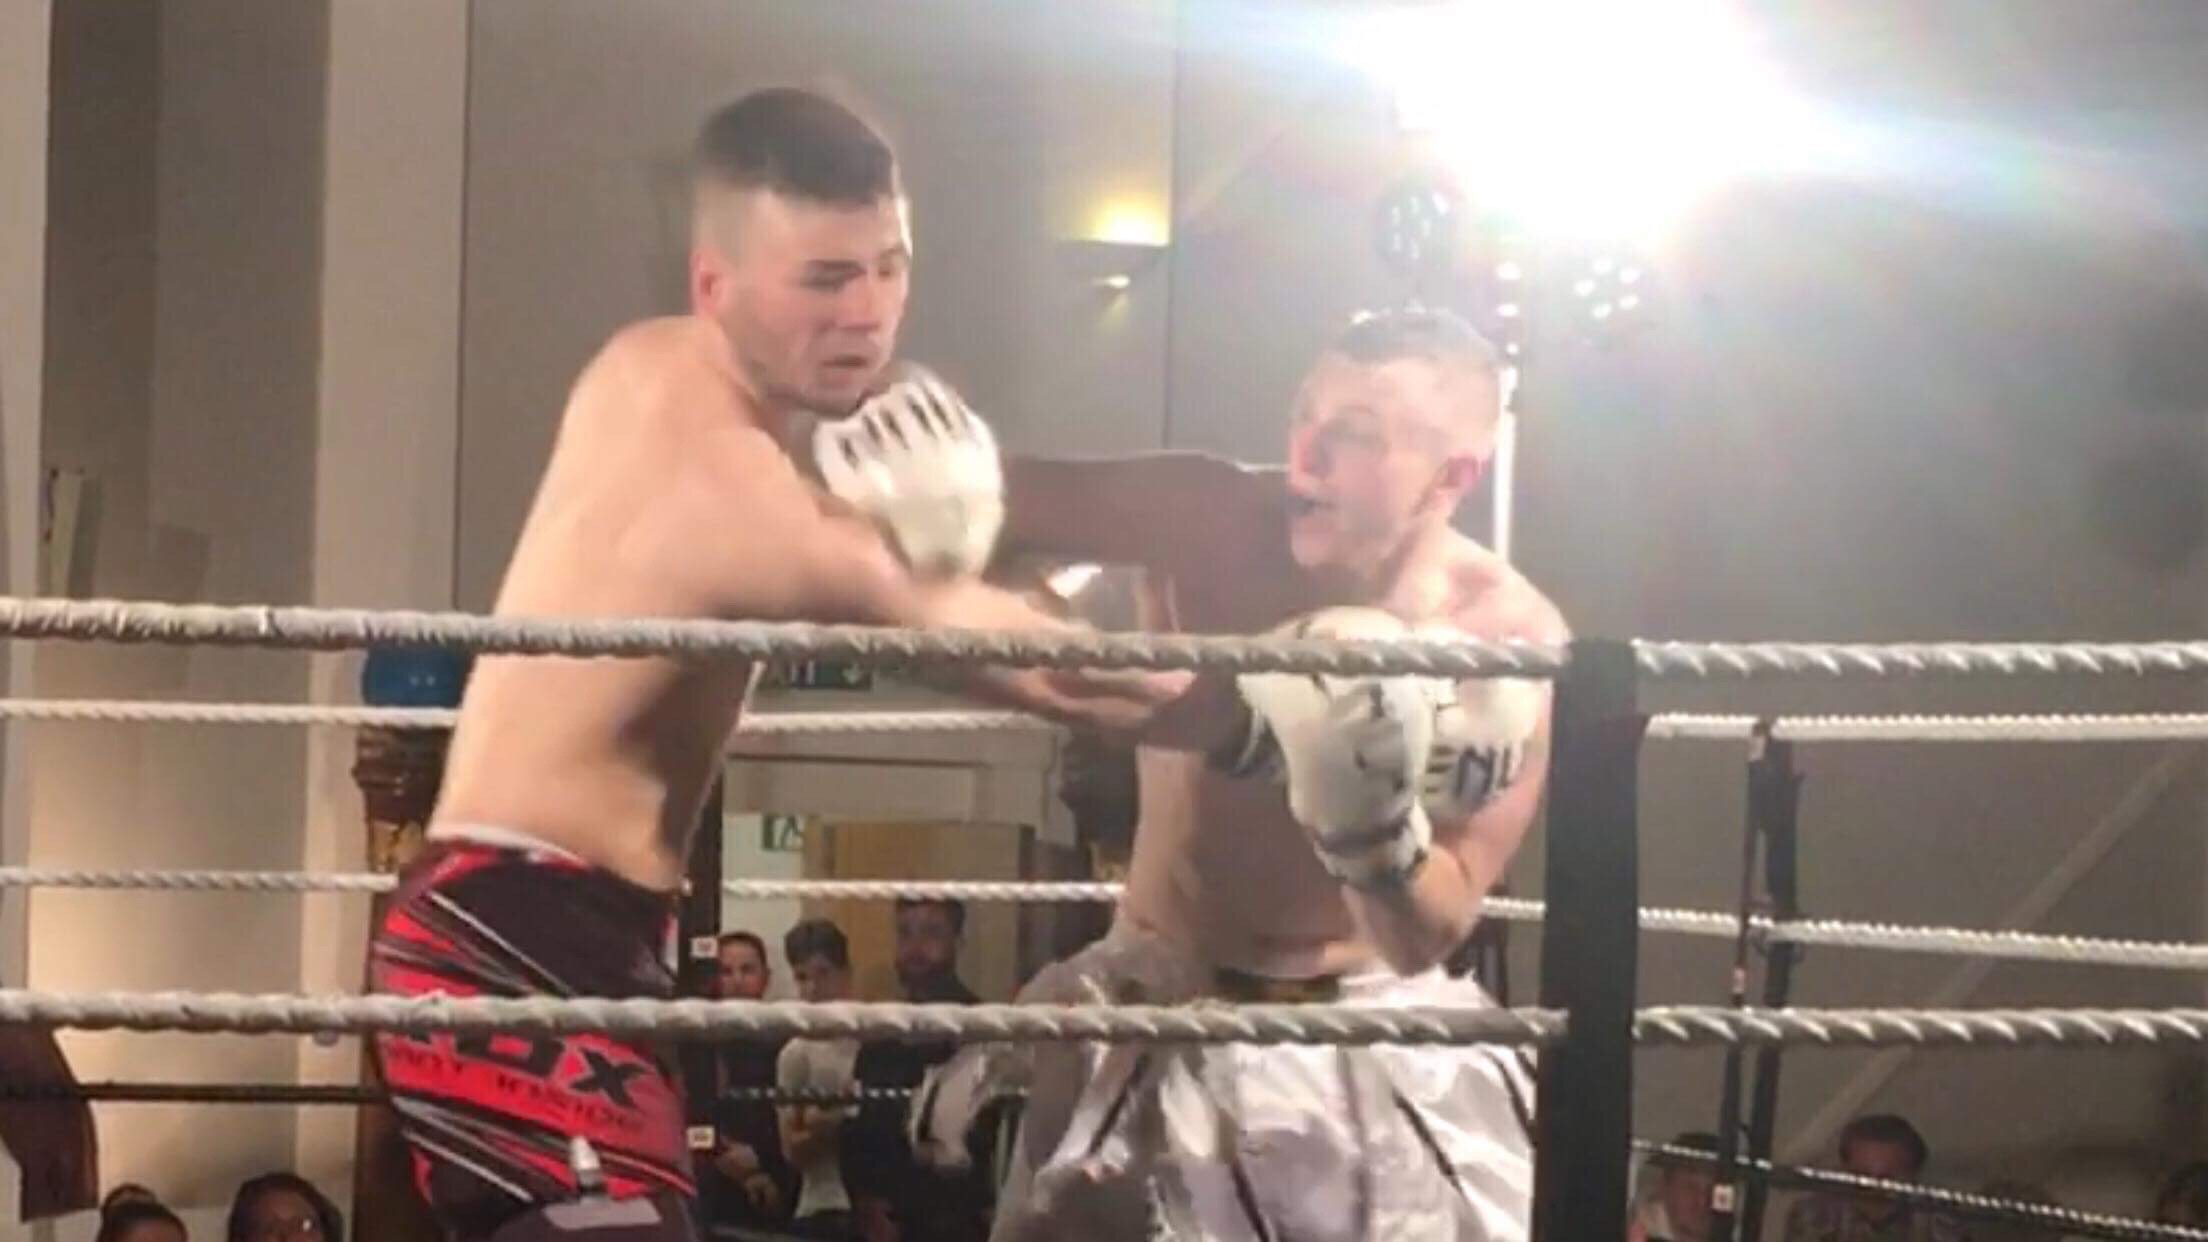 Dan's the man – he takes just 45 seconds to dispose of his opponent